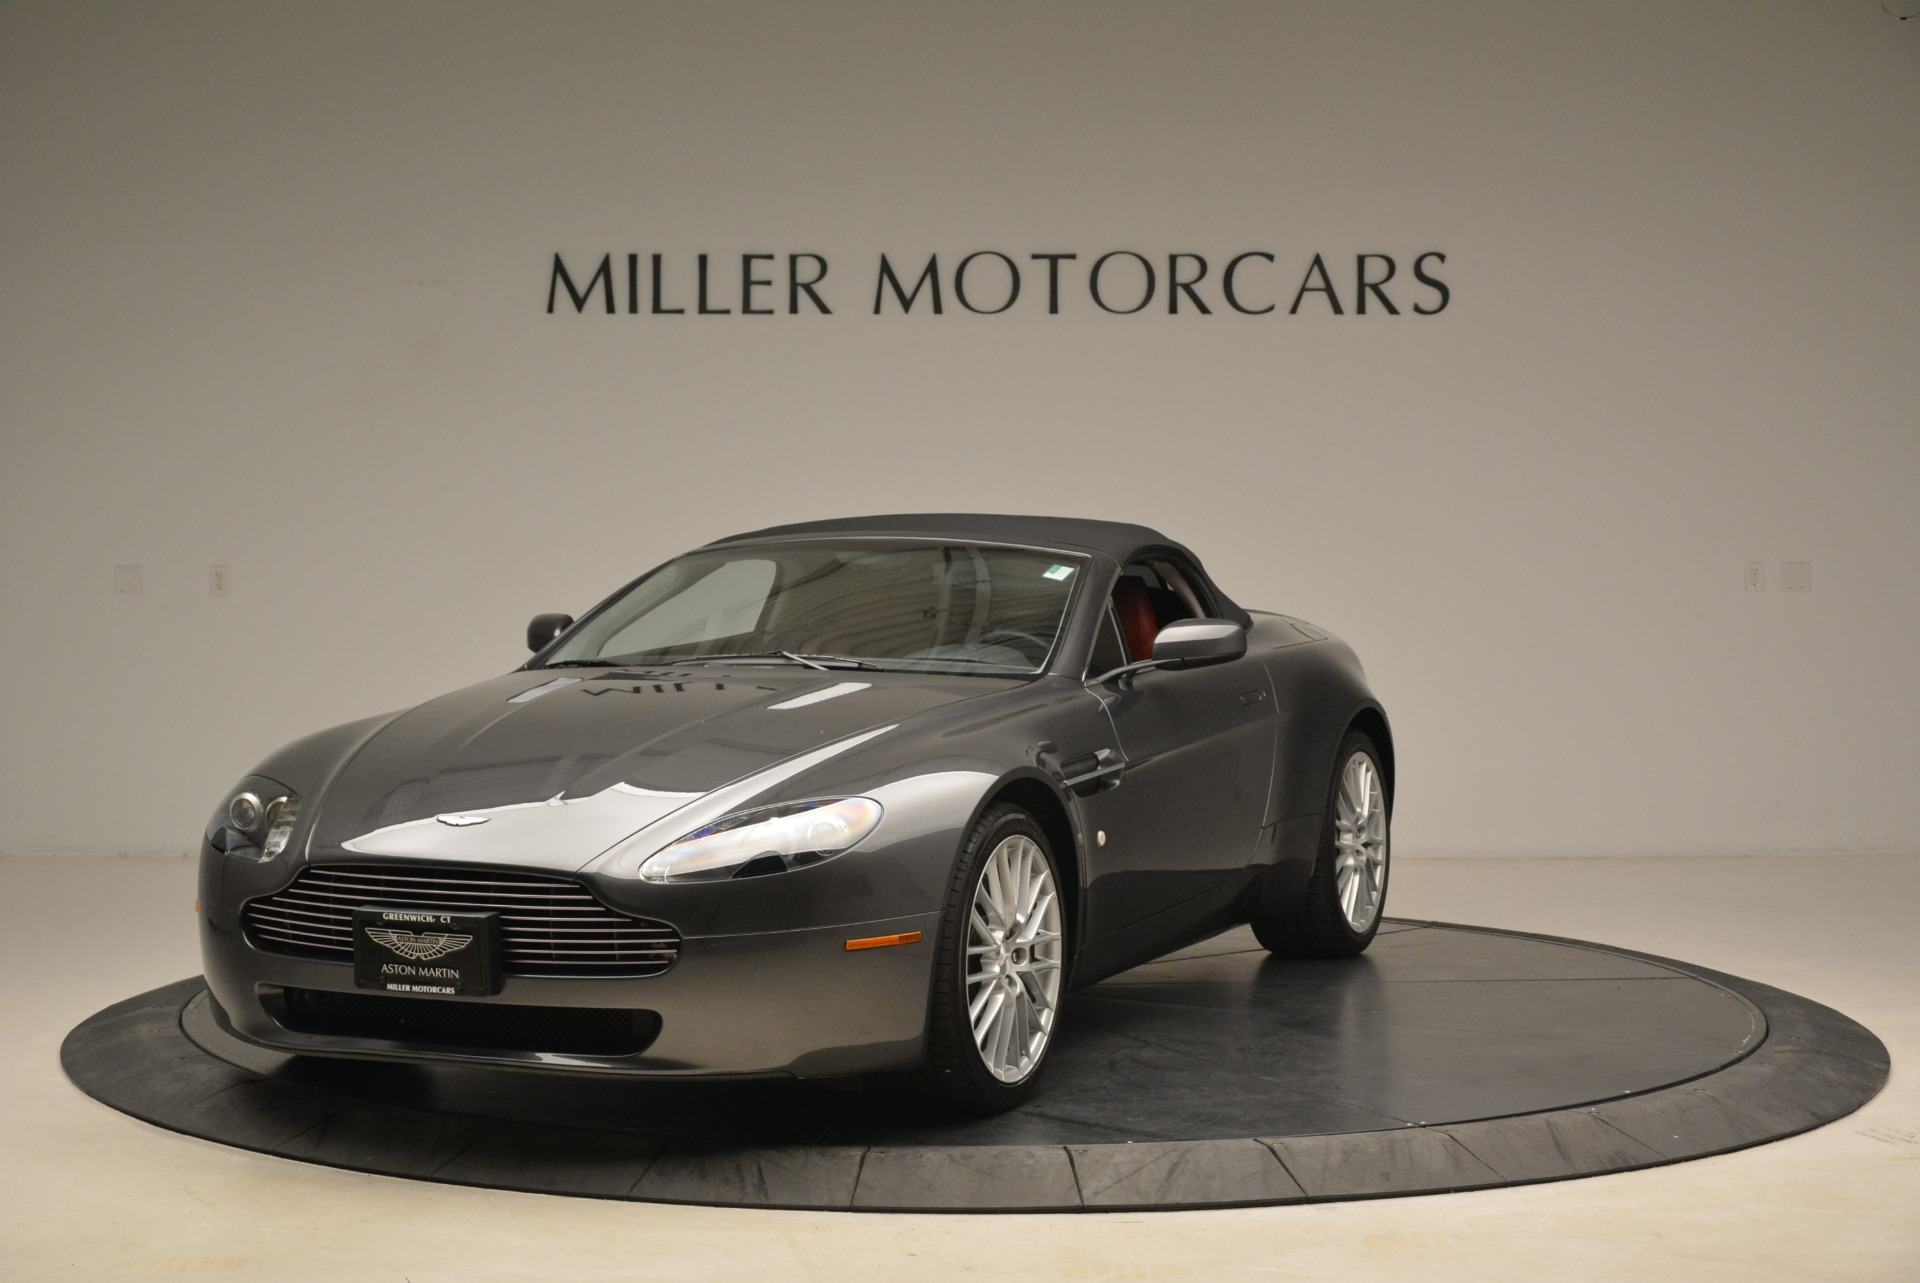 Used 2009 Aston Martin V8 Vantage Roadster For Sale In Greenwich, CT 2123_p13